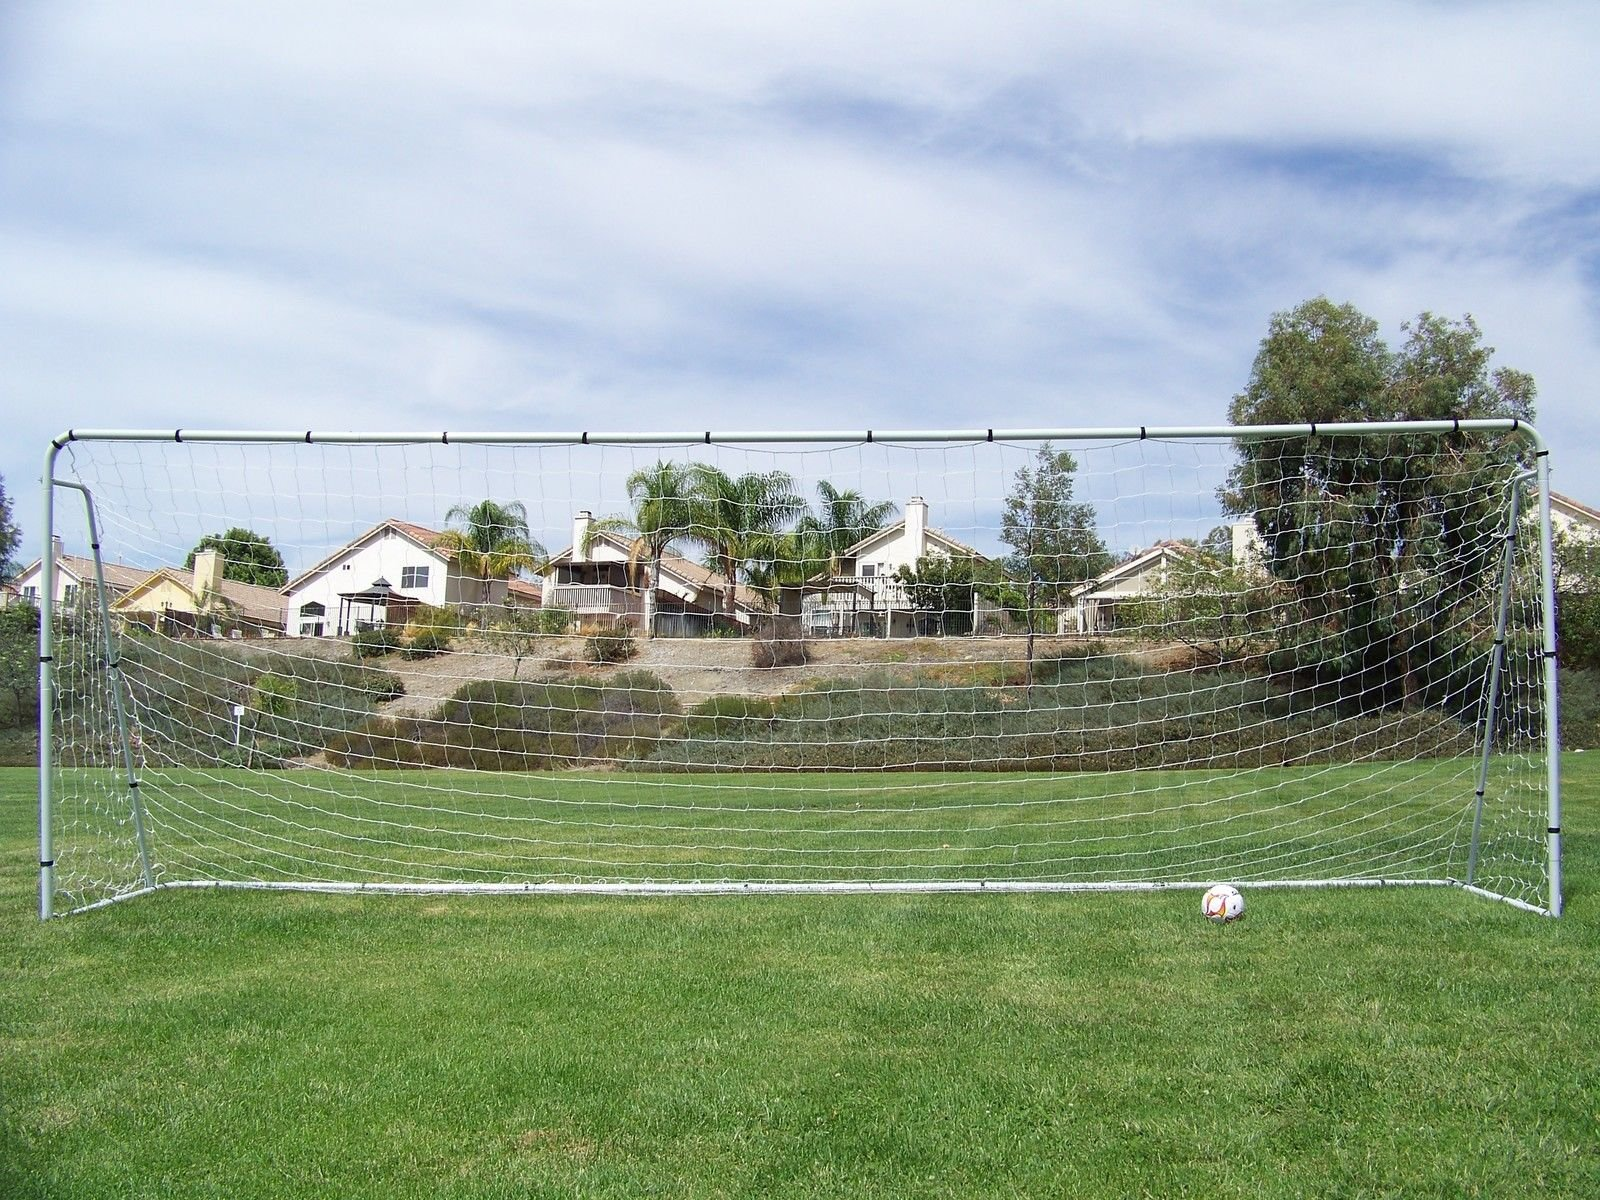 PASS 21 X 7 X 5 Ft Official Youth Modified Size. Heavy Duty Steel Soccer Goal w/ Net. Regulation Youth Modified, League Size Goals. Professional Practice Training Aid. 21 X 7, 21x7 Soccer Goal